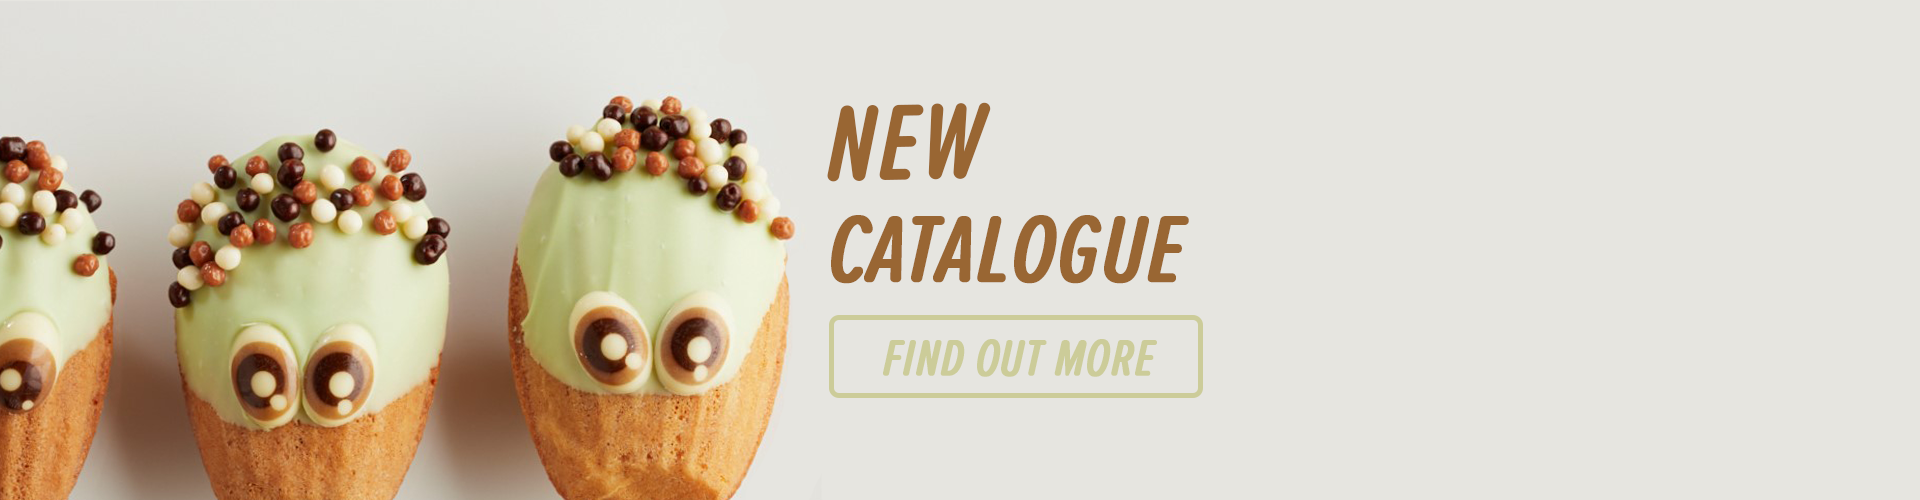 NEW catalogue chocolatree chocolate decorations : find out more